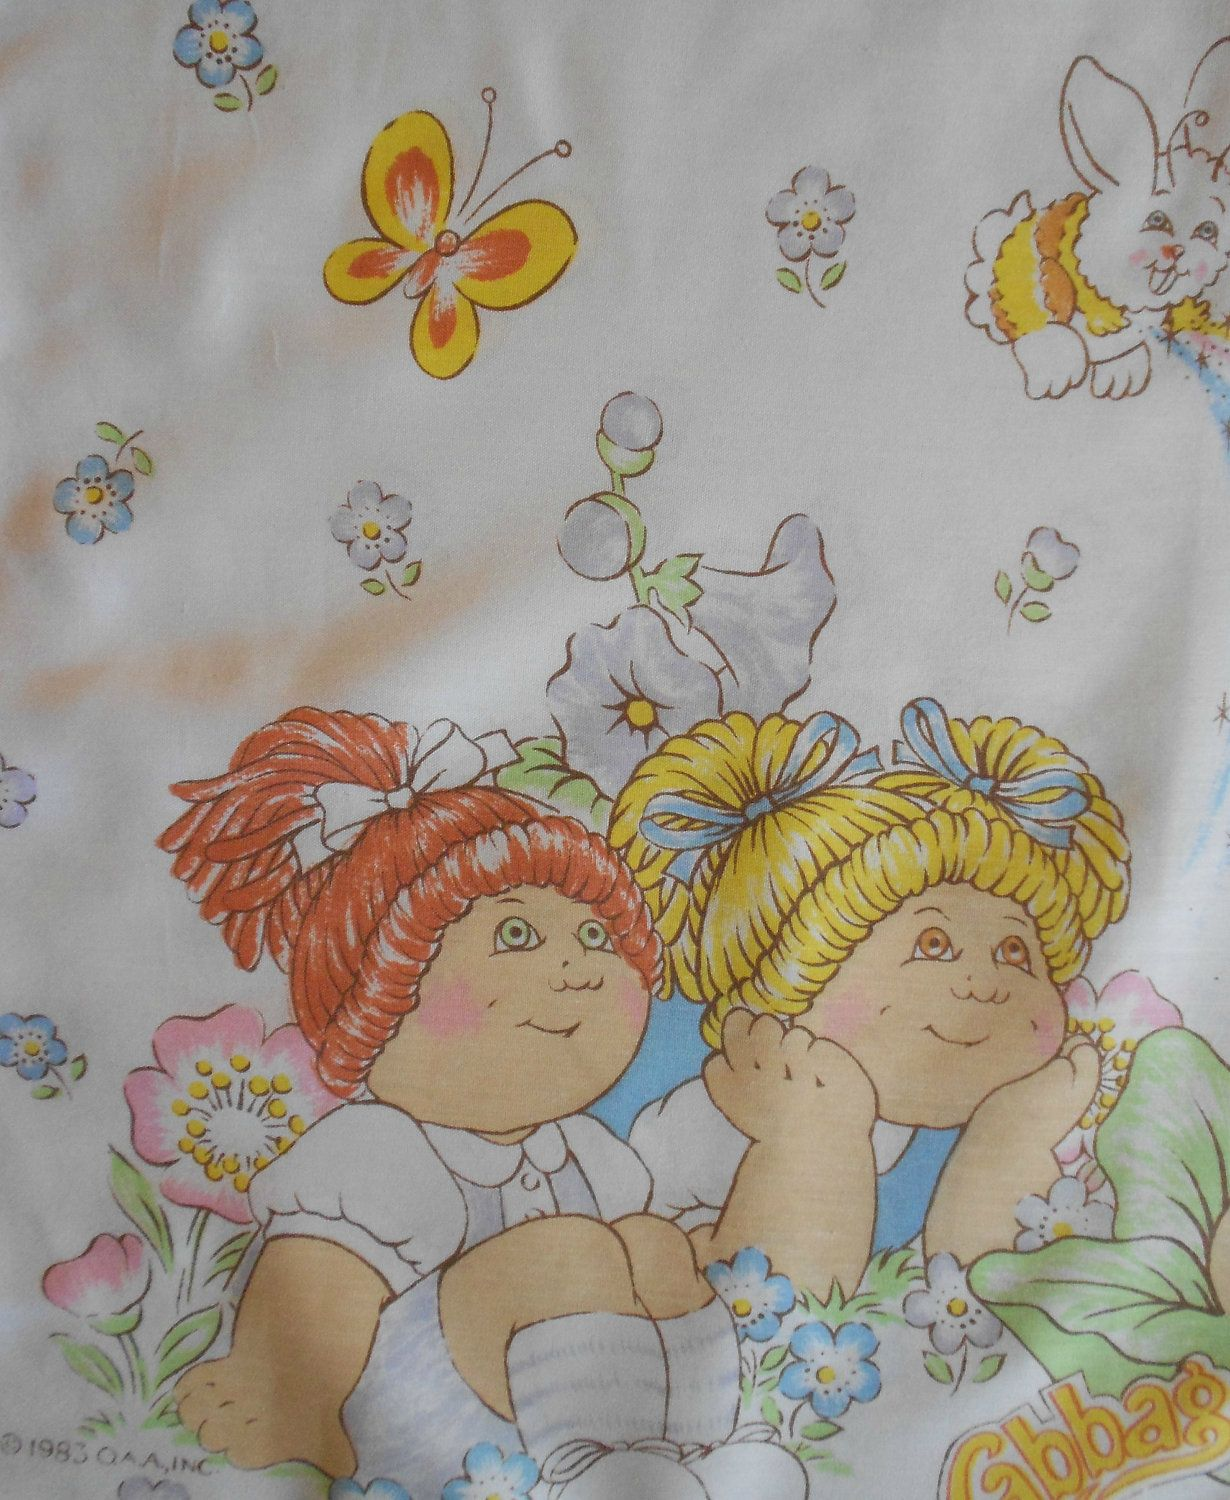 we had these cabbage patch sheets! haha